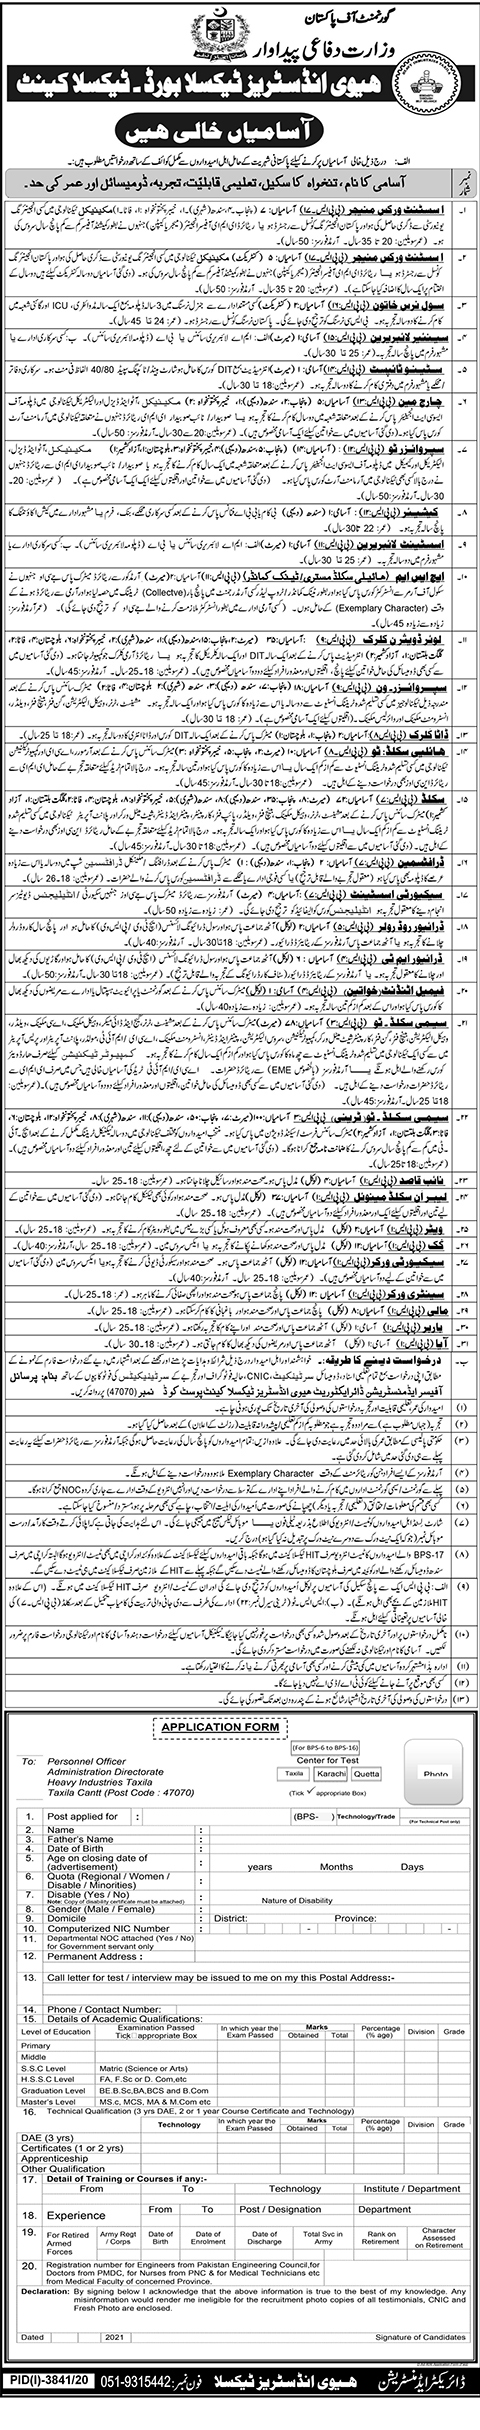 Heavy Industries Taxila HIT Jobs 2021 Test Date Roll No Slip